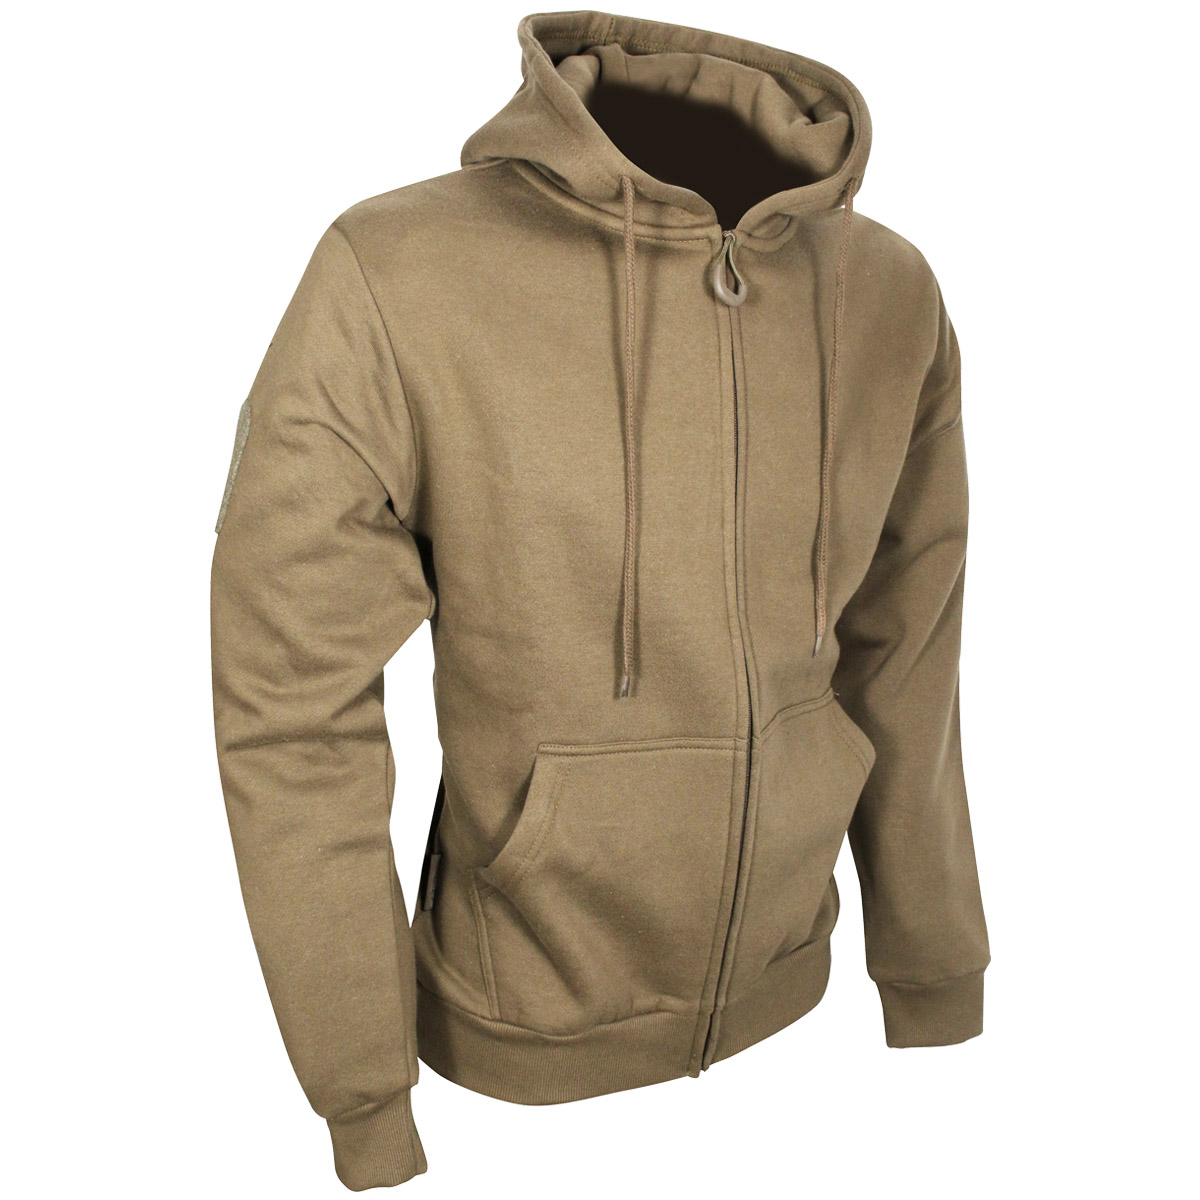 Tactical hoodies